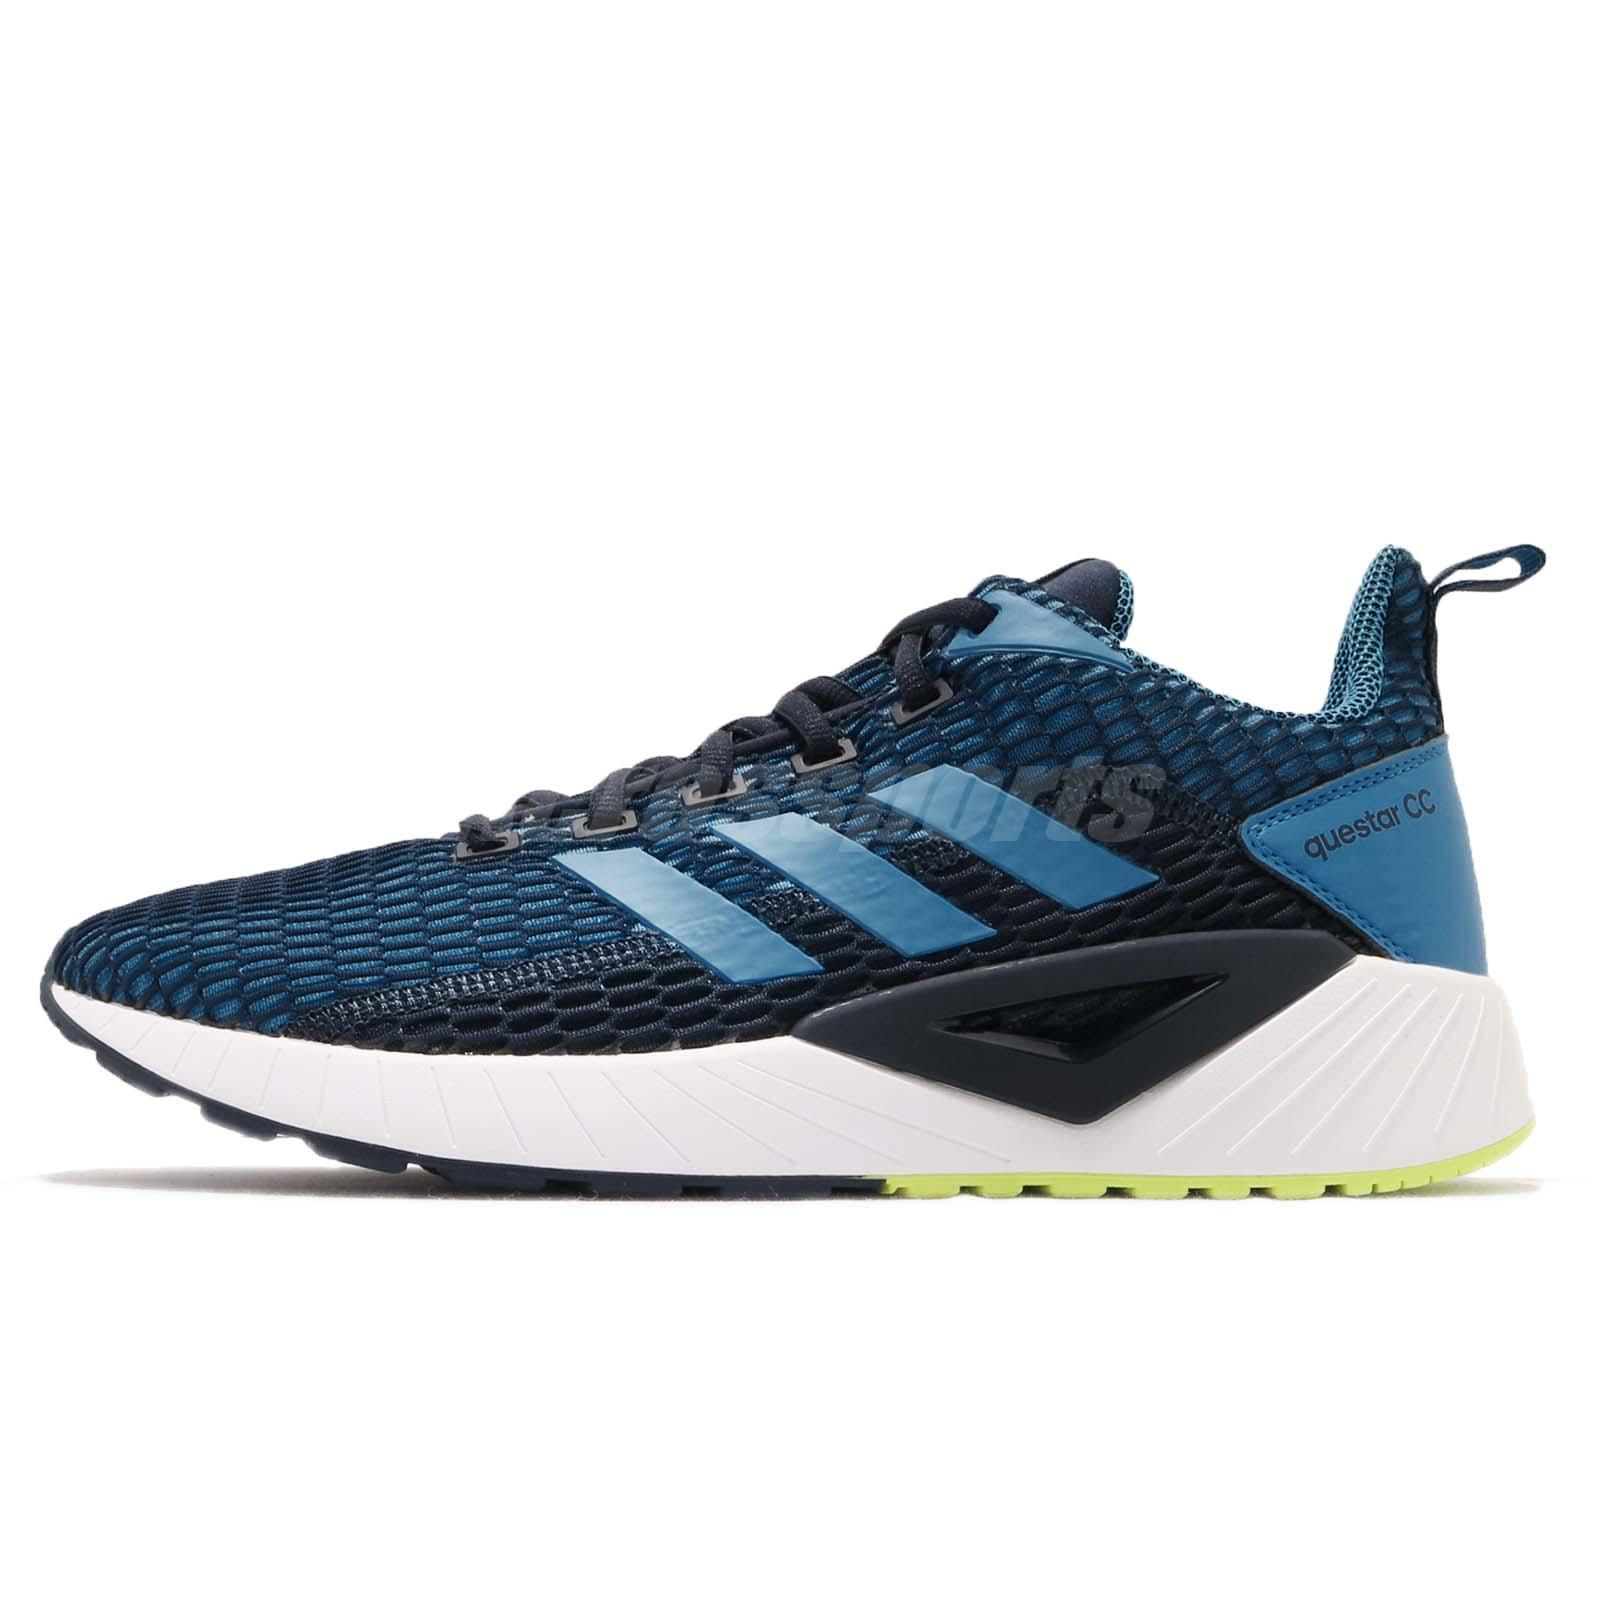 online store 99553 356de adidas Questar CC Navy Blue White Yellow Men Running Shoes Sneakers DB1155